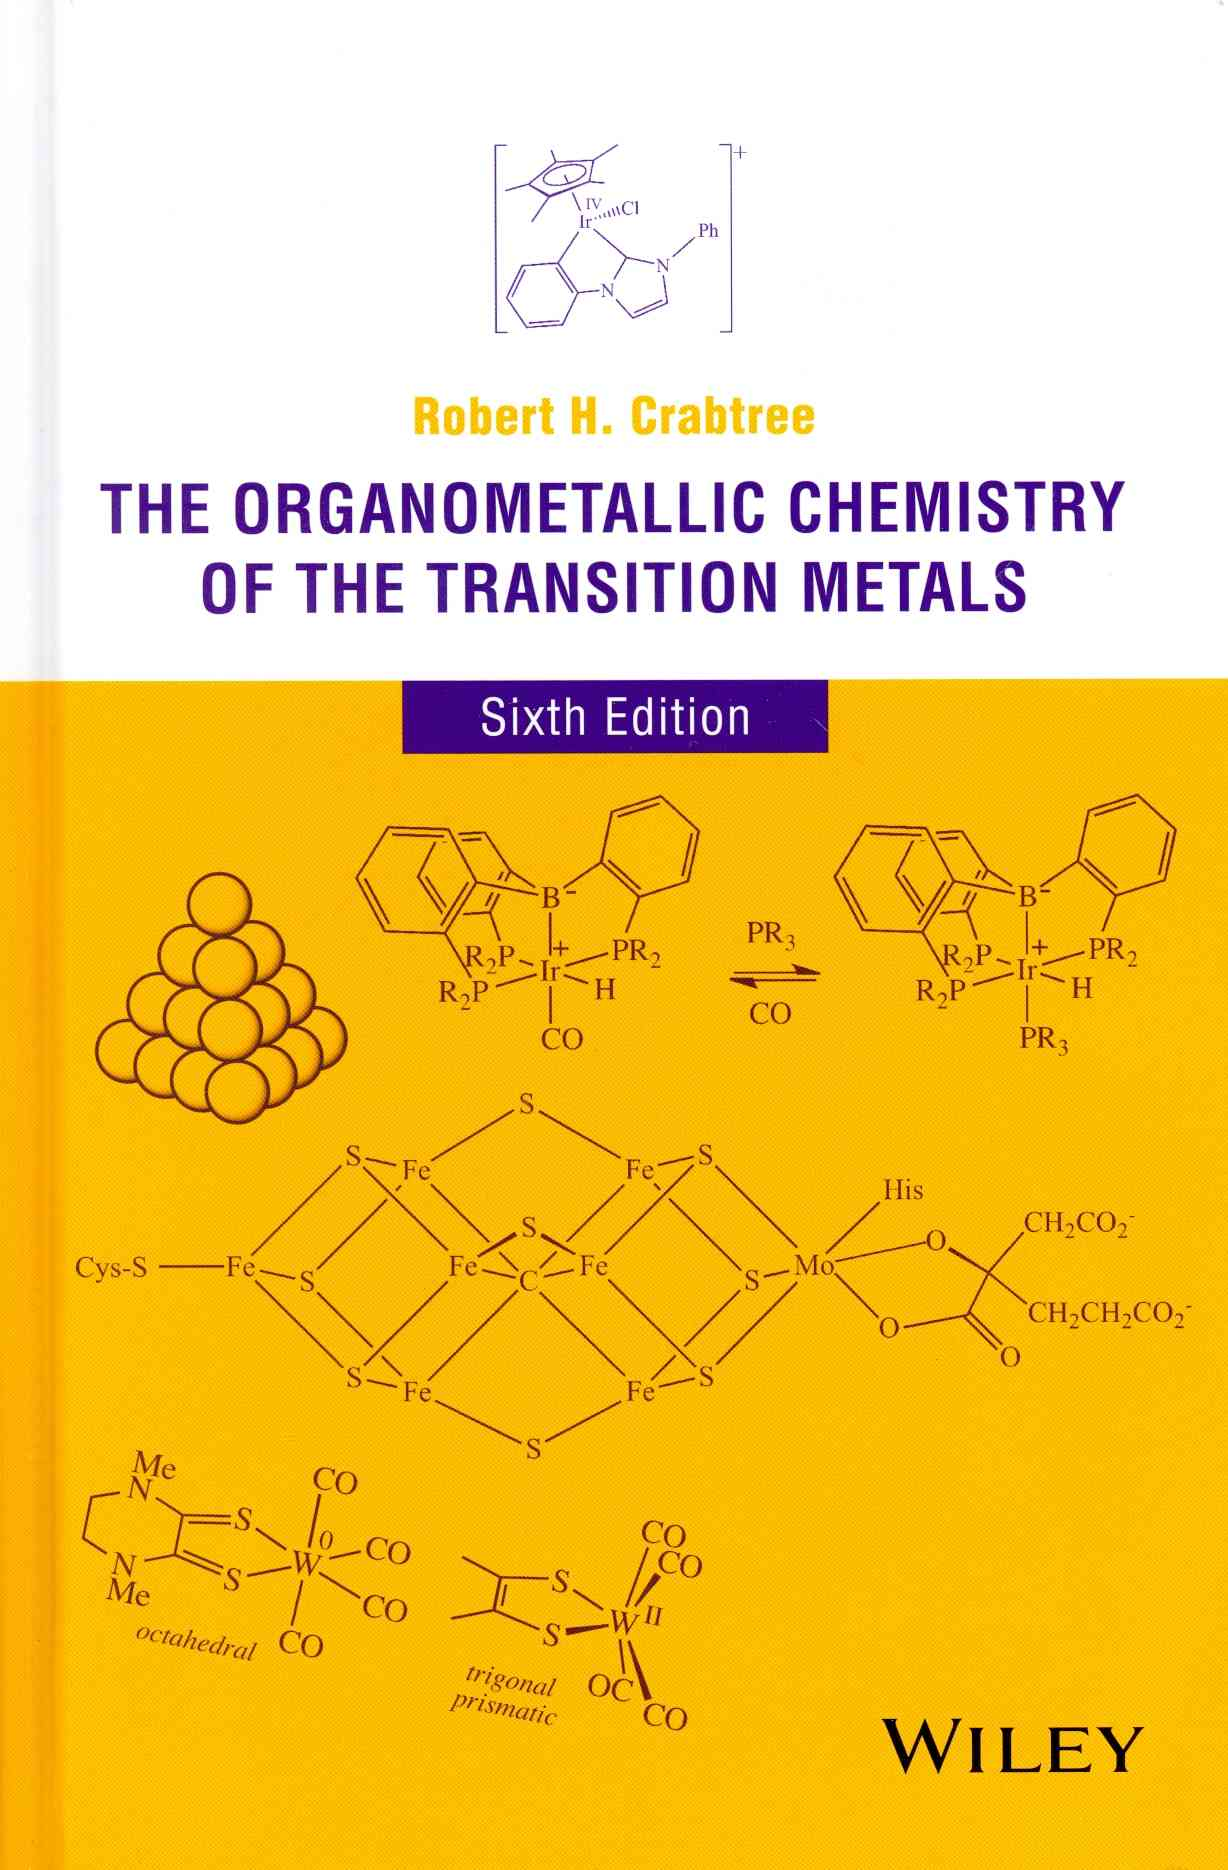 The Organometallic Chemistry of the Transition Metals By Crabtree, Robert H.